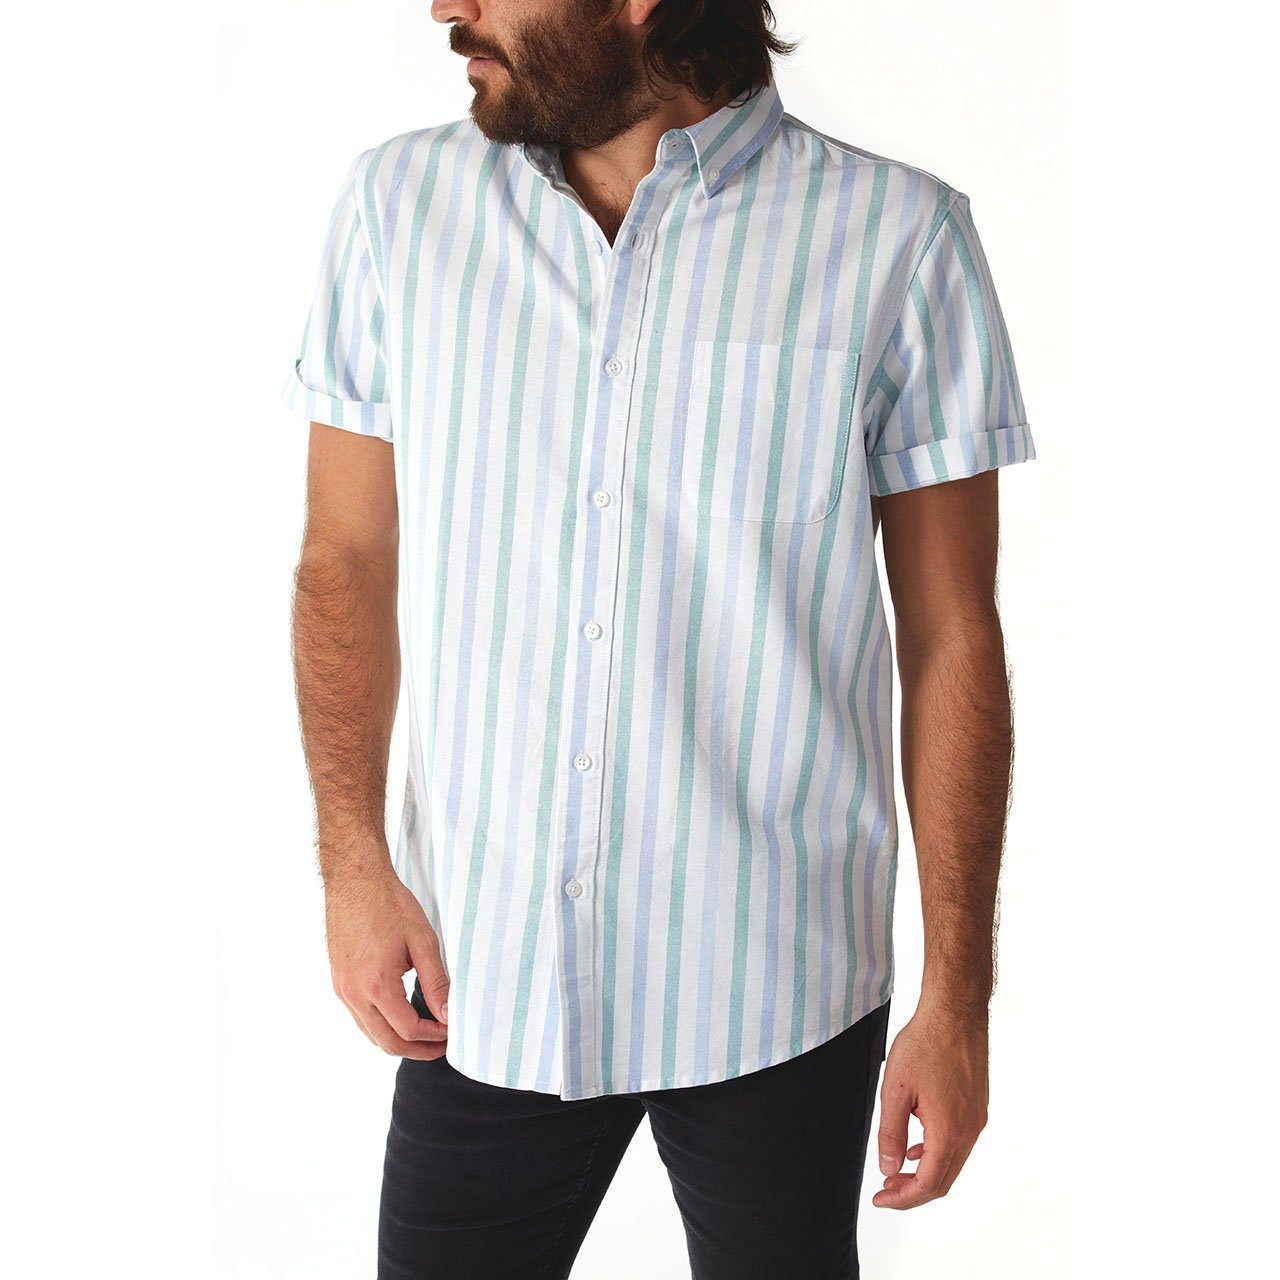 Short Sleeve Shirt, Shirt - Martin Vertical Striped Shirt